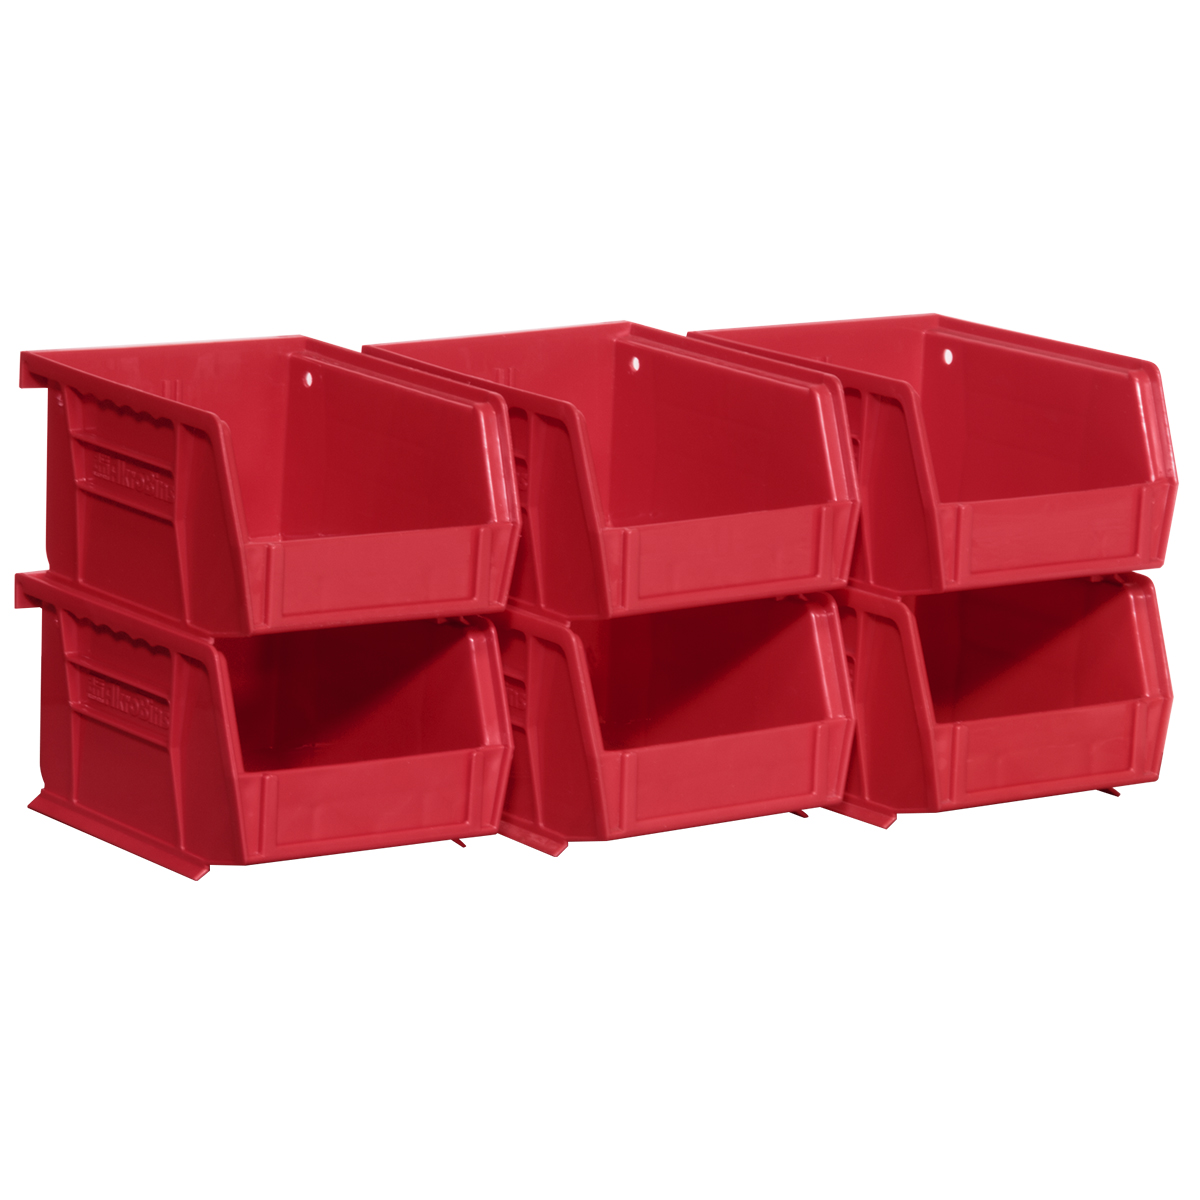 AkroBin 5-3/8 x 4-1/8 x 3, 30210, 6-Pack, Red (08212RED).  This item sold in carton quantities of 1.